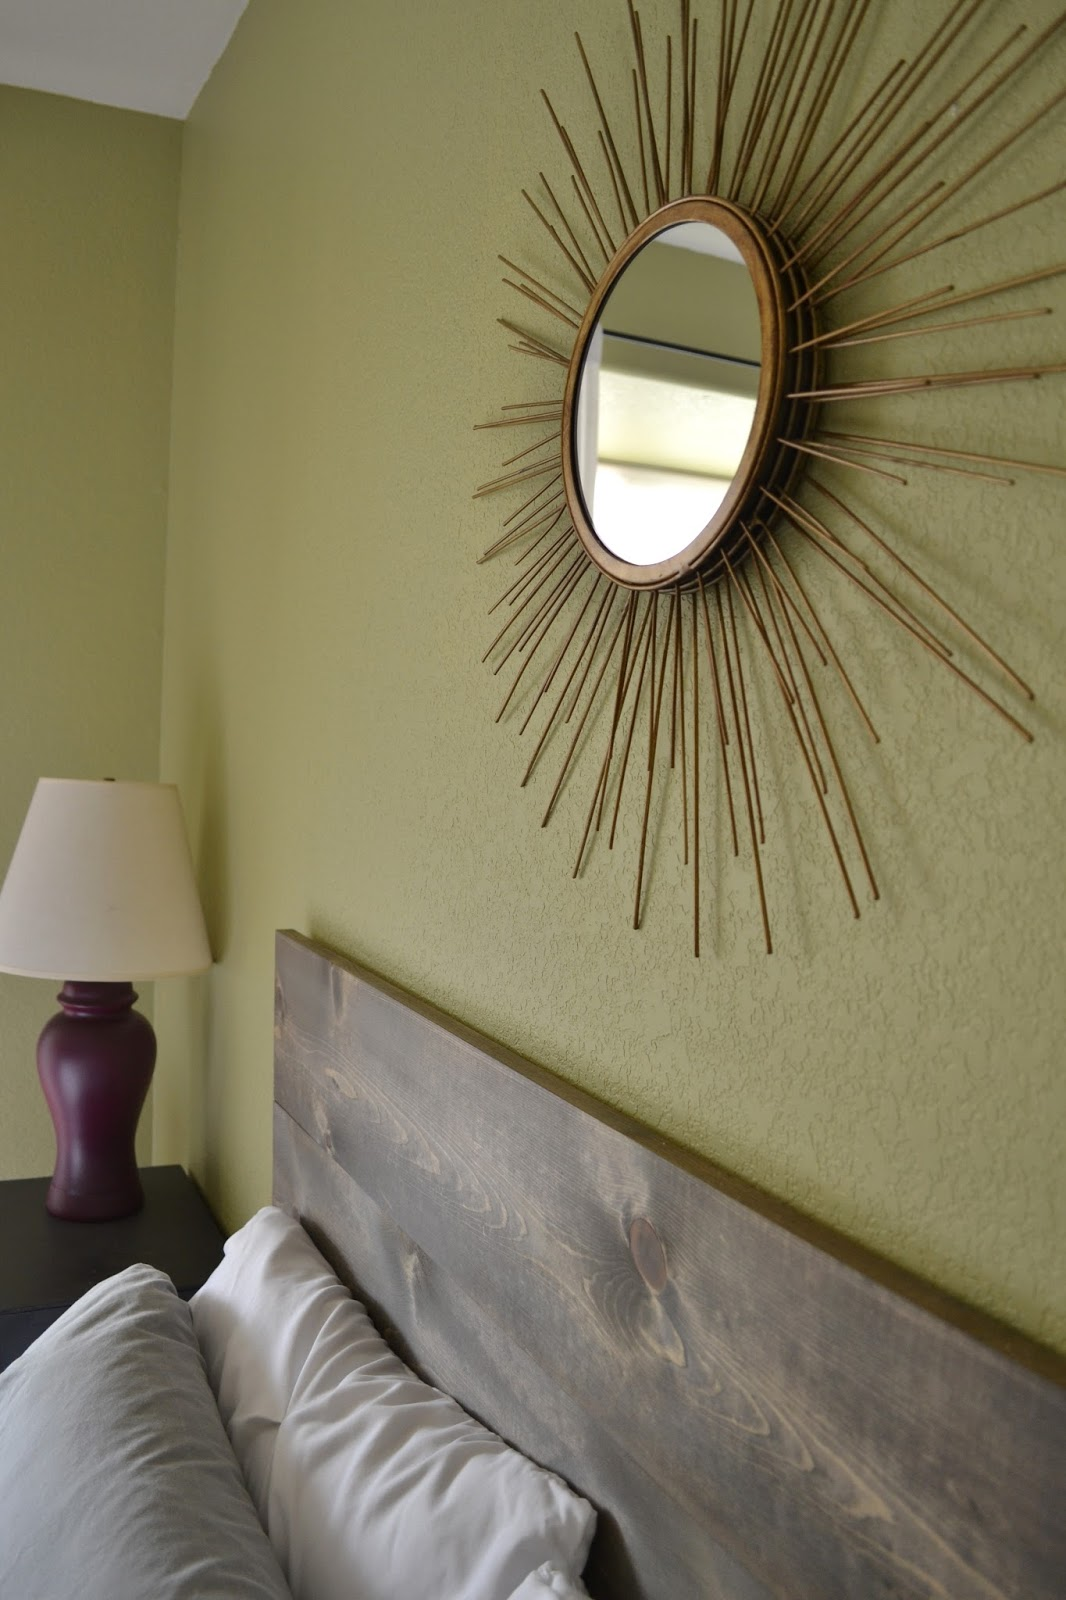 Sunburst Mirror above Headboard